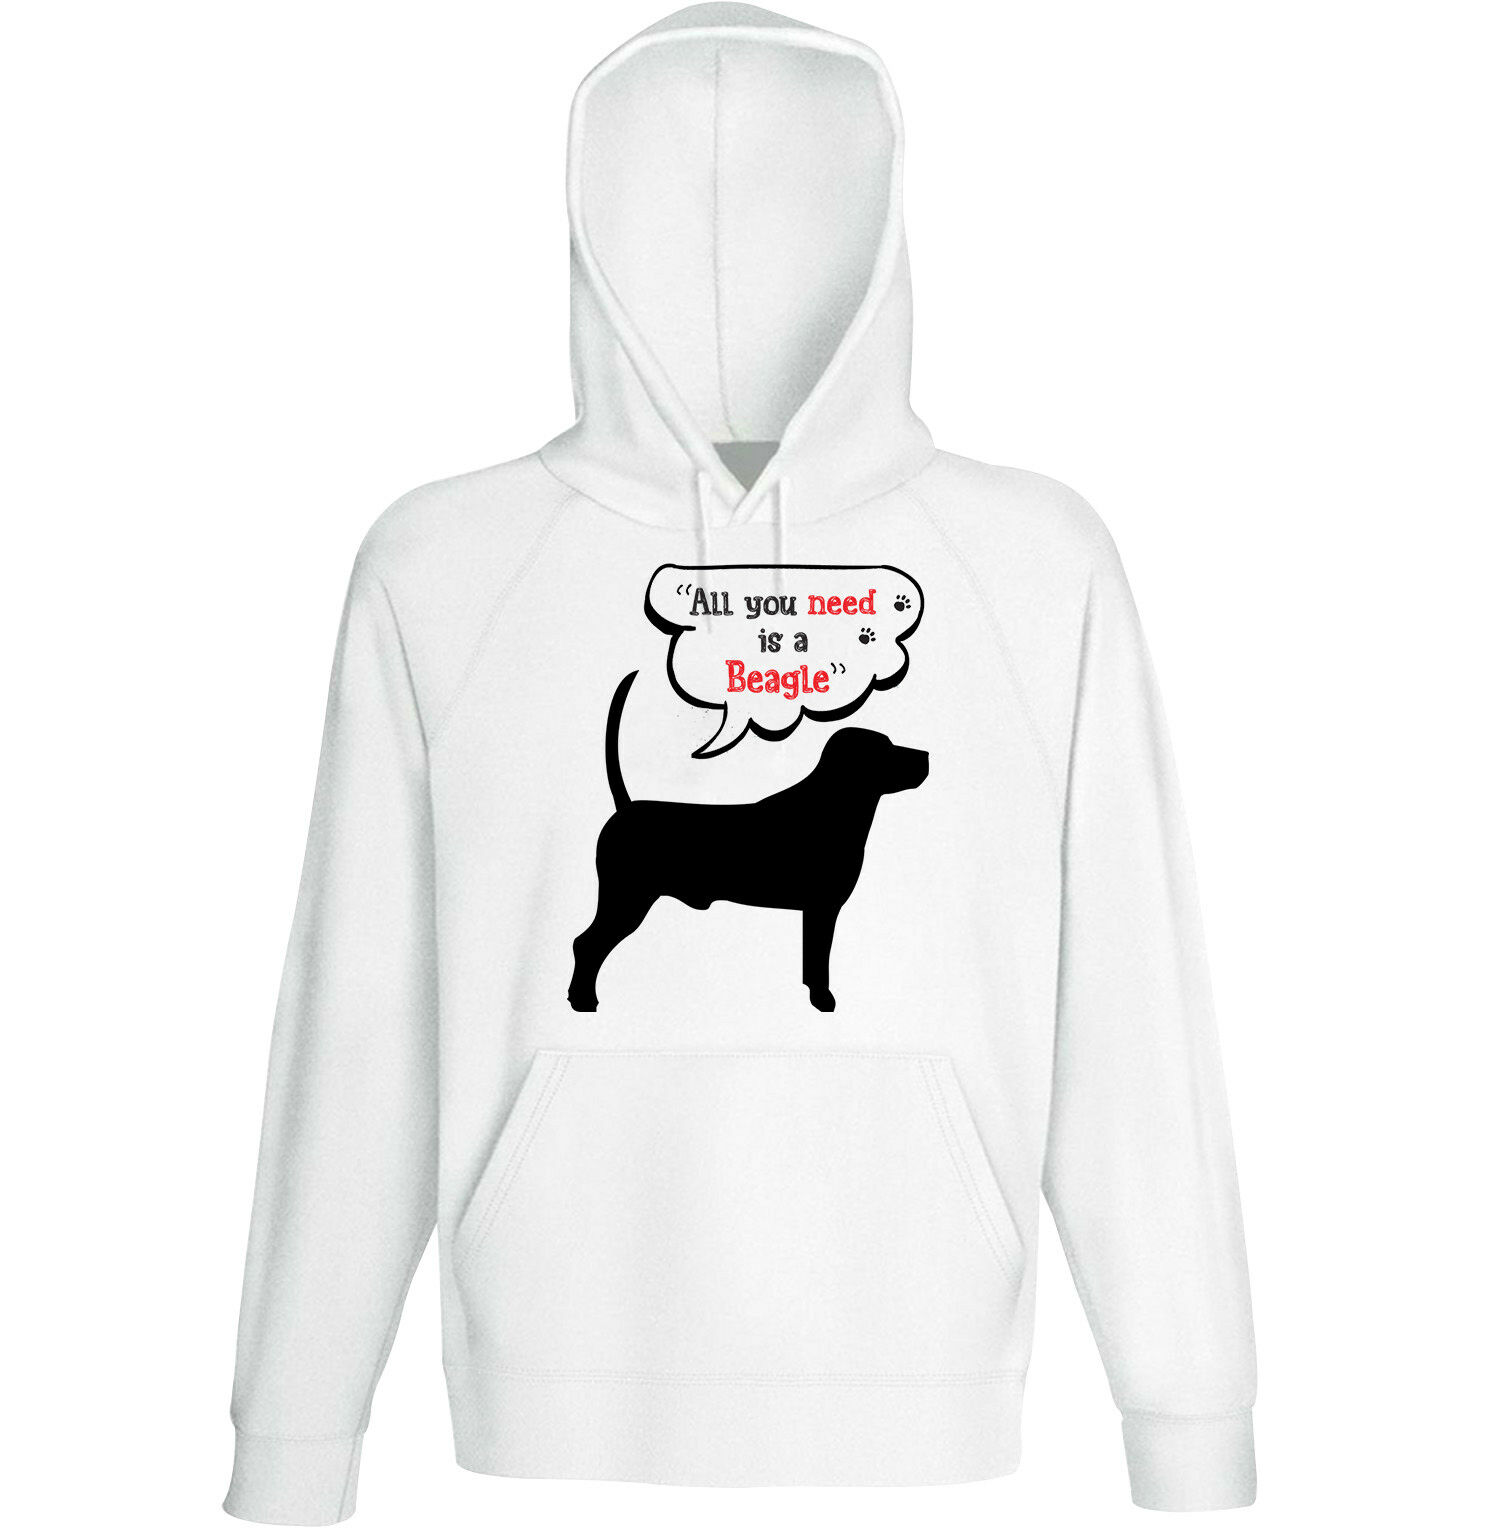 Beagle p all you need - NEW COTTON WHITE HOODIE